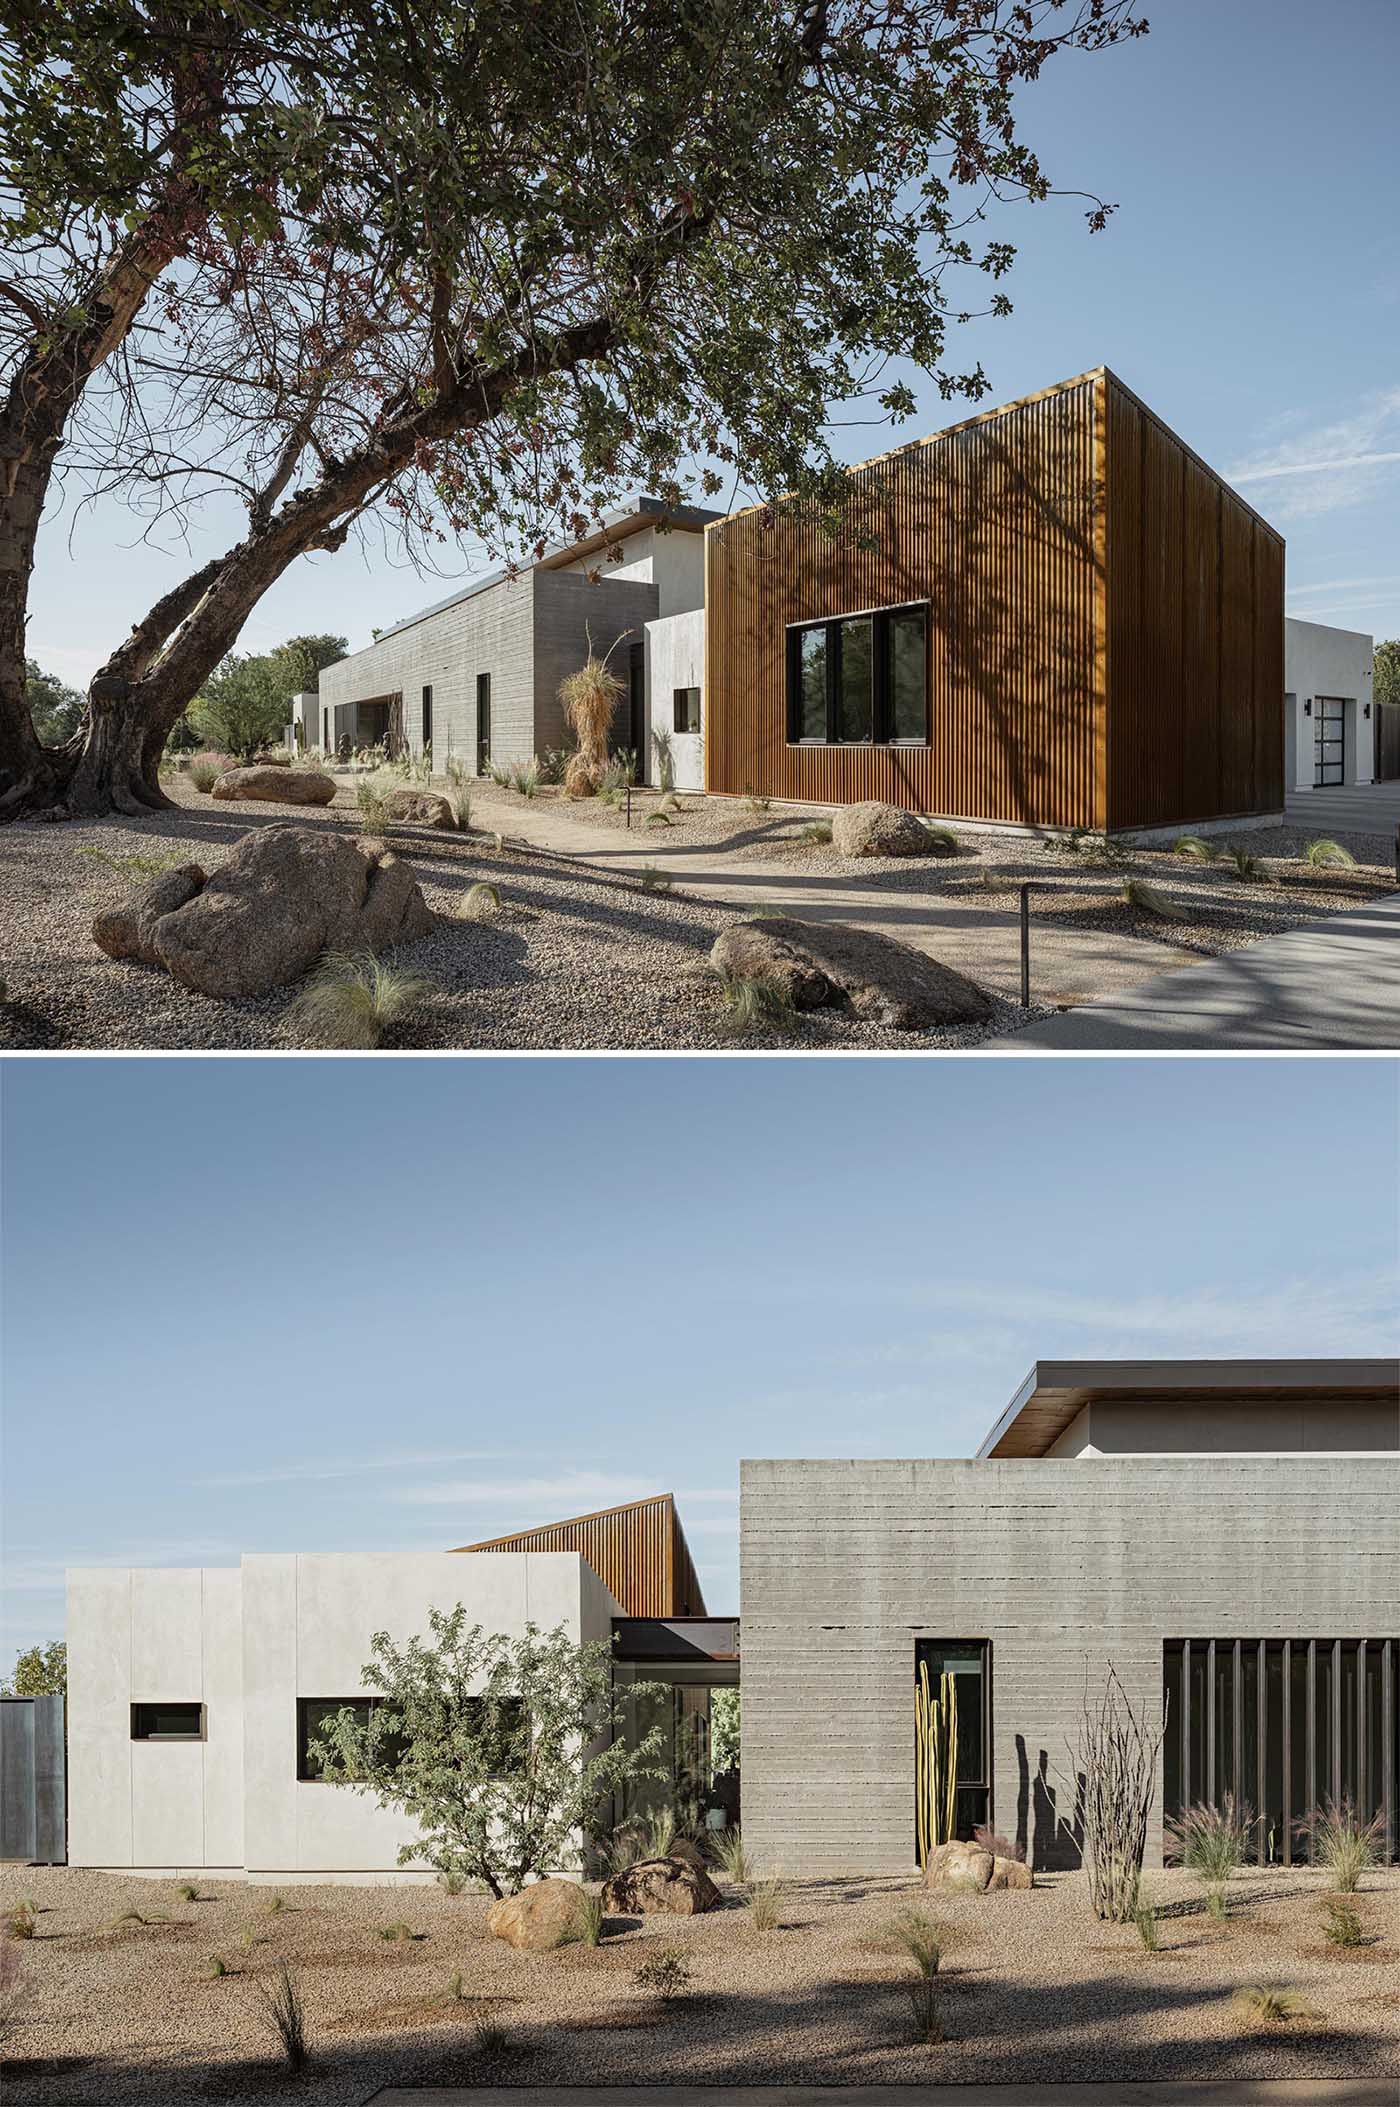 The exterior of this modern desert home is composed of materials well suited for the harsh environment such as board-formed concrete, rusted corrugated metal, hand troweled stucco, steel and glass.